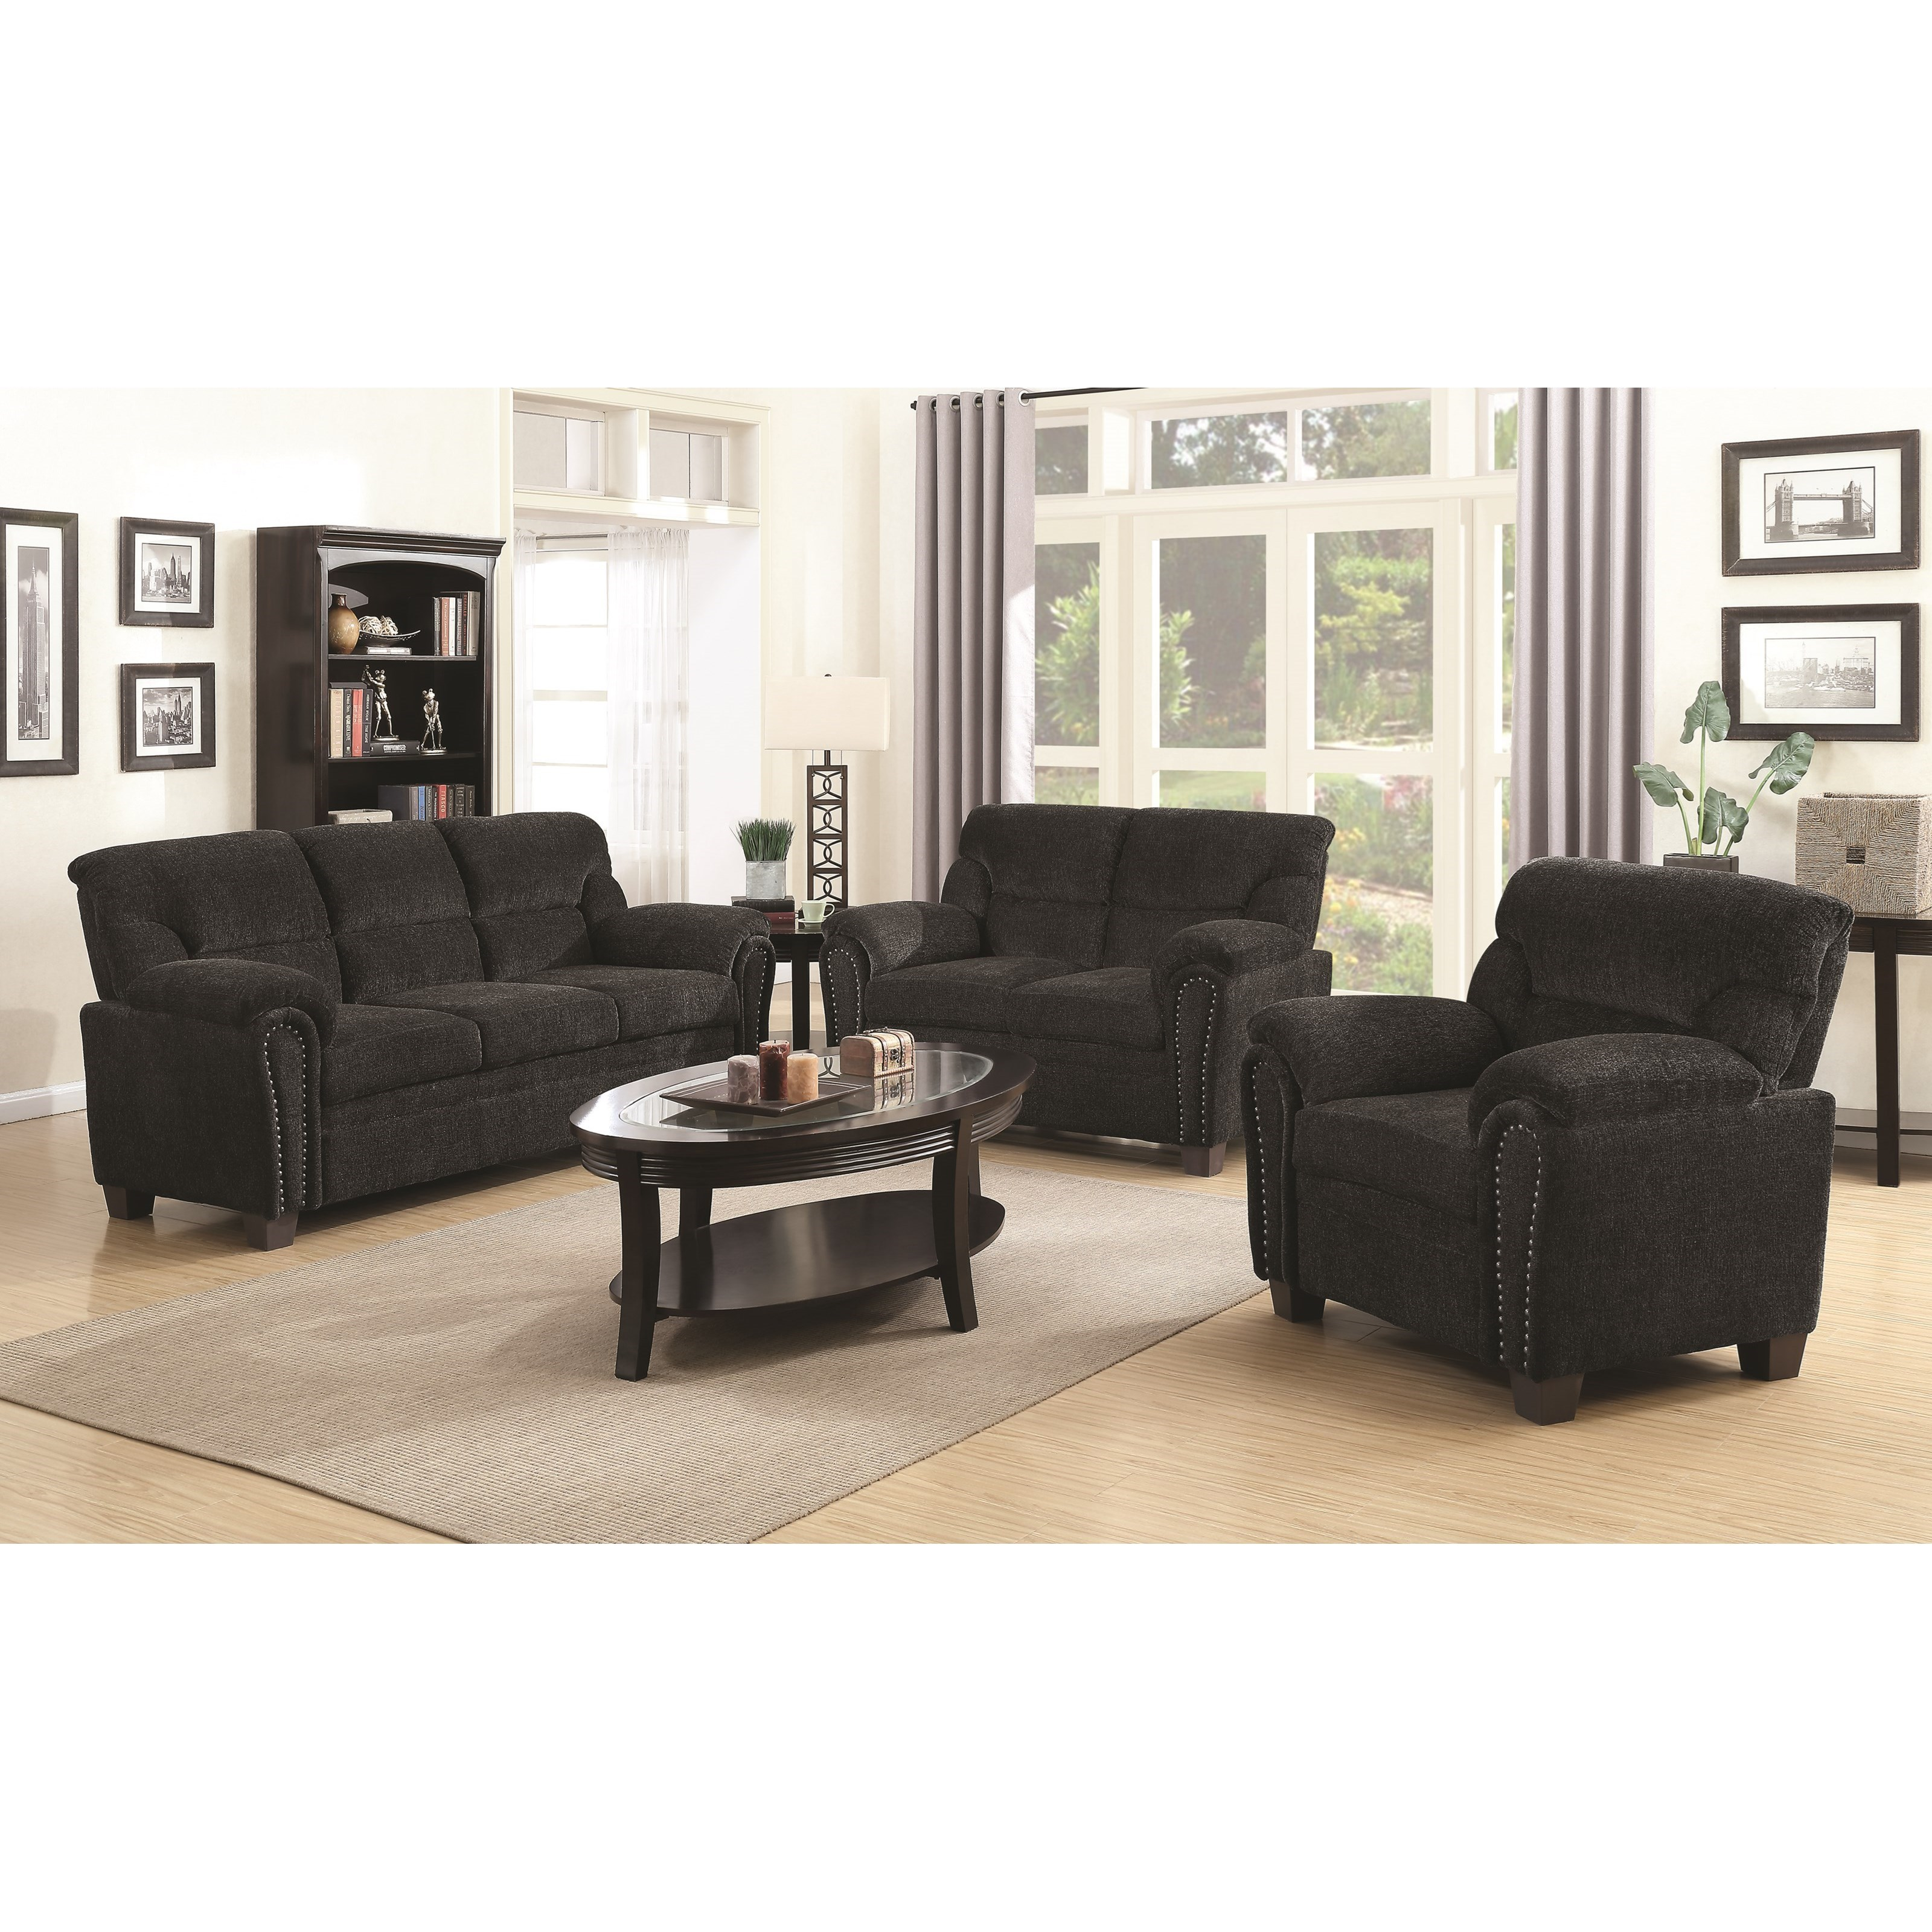 Clemintine by Coaster Stationary Living Room Group by Coaster at Standard Furniture